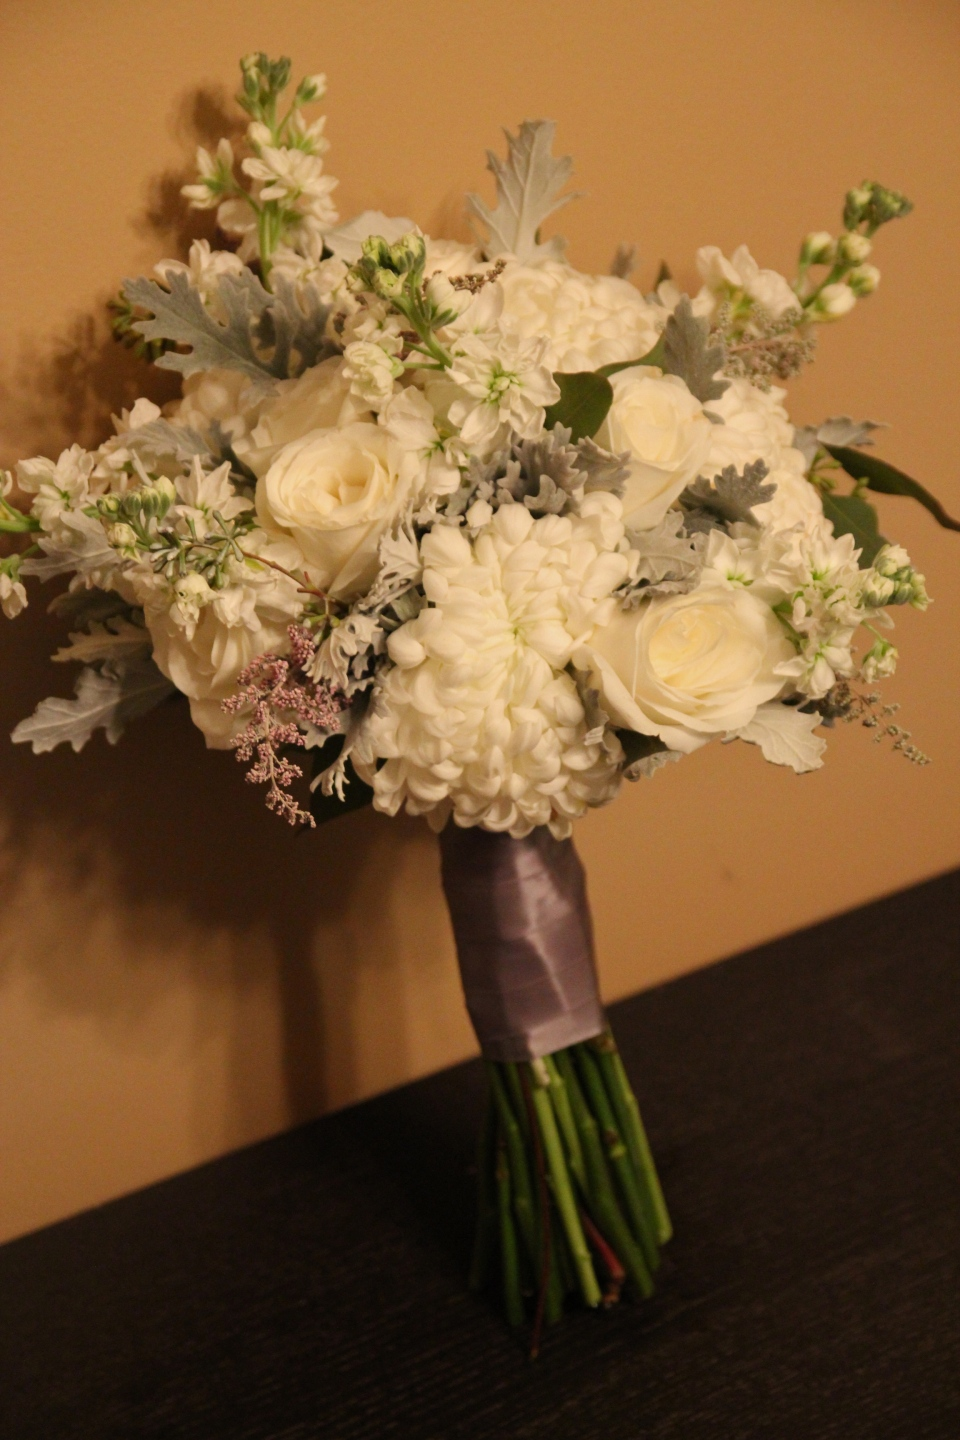 Winter wonderful bouquet of mums, roses, stock, dusty miller & seeded eucalyptus